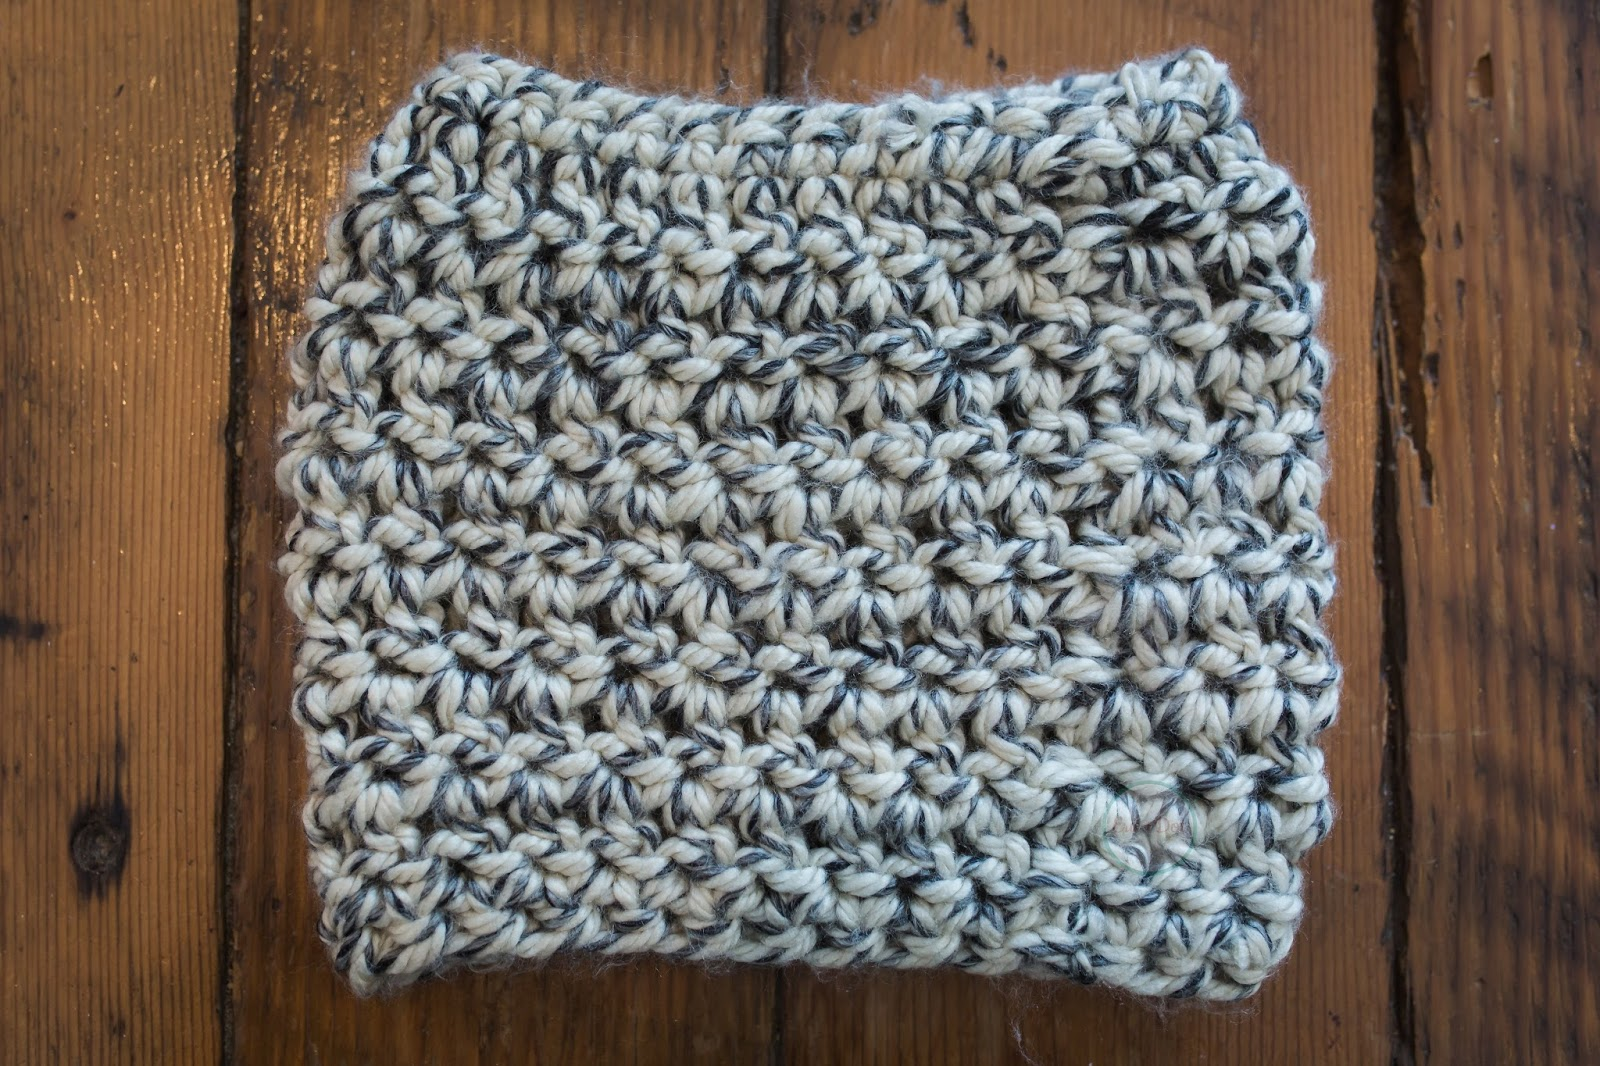 The Andie Crochet Cowl, Toddler Crochet Scarf, Chunky Scarf, Infinity Scarf, Knitwear, Kids Fashion, Neckwarmer, Boys, Girls, Gender Neutral, For Kids